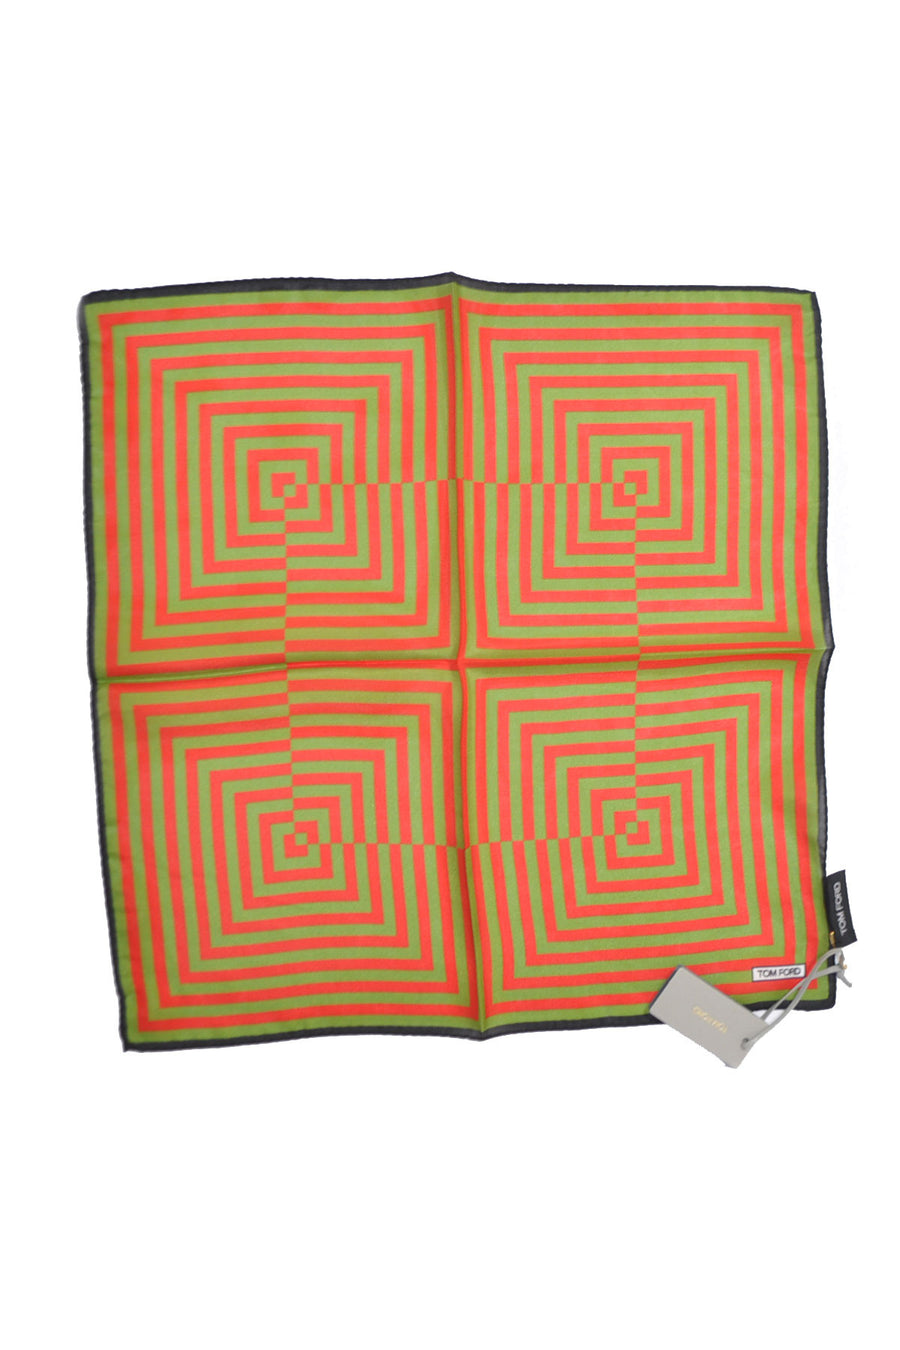 Tom Ford Pocket Square Red Green Squares Stripes